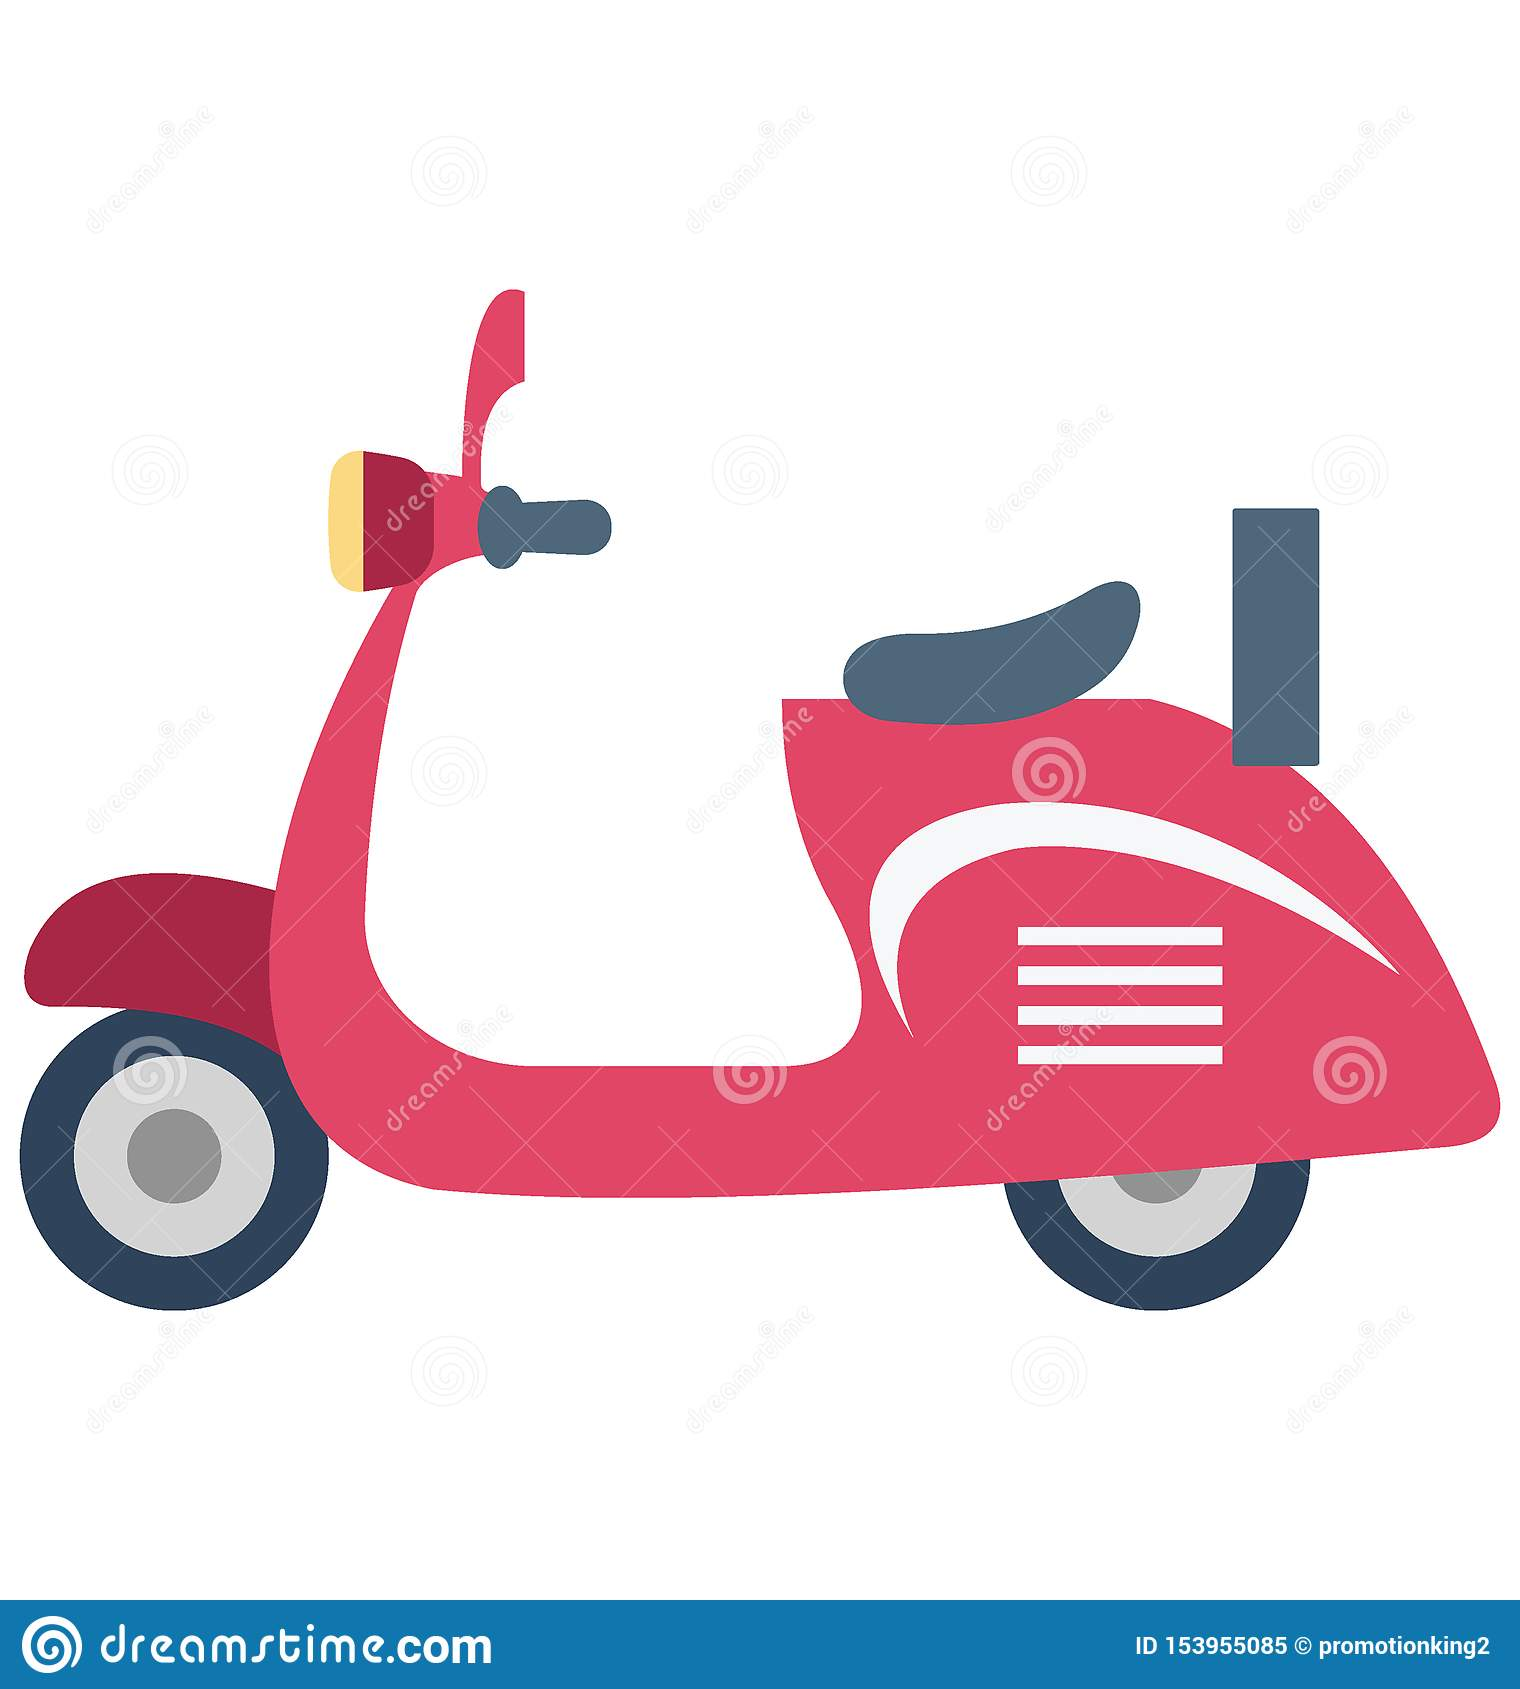 Vespa Color Vector Icon which can easily modify or edit